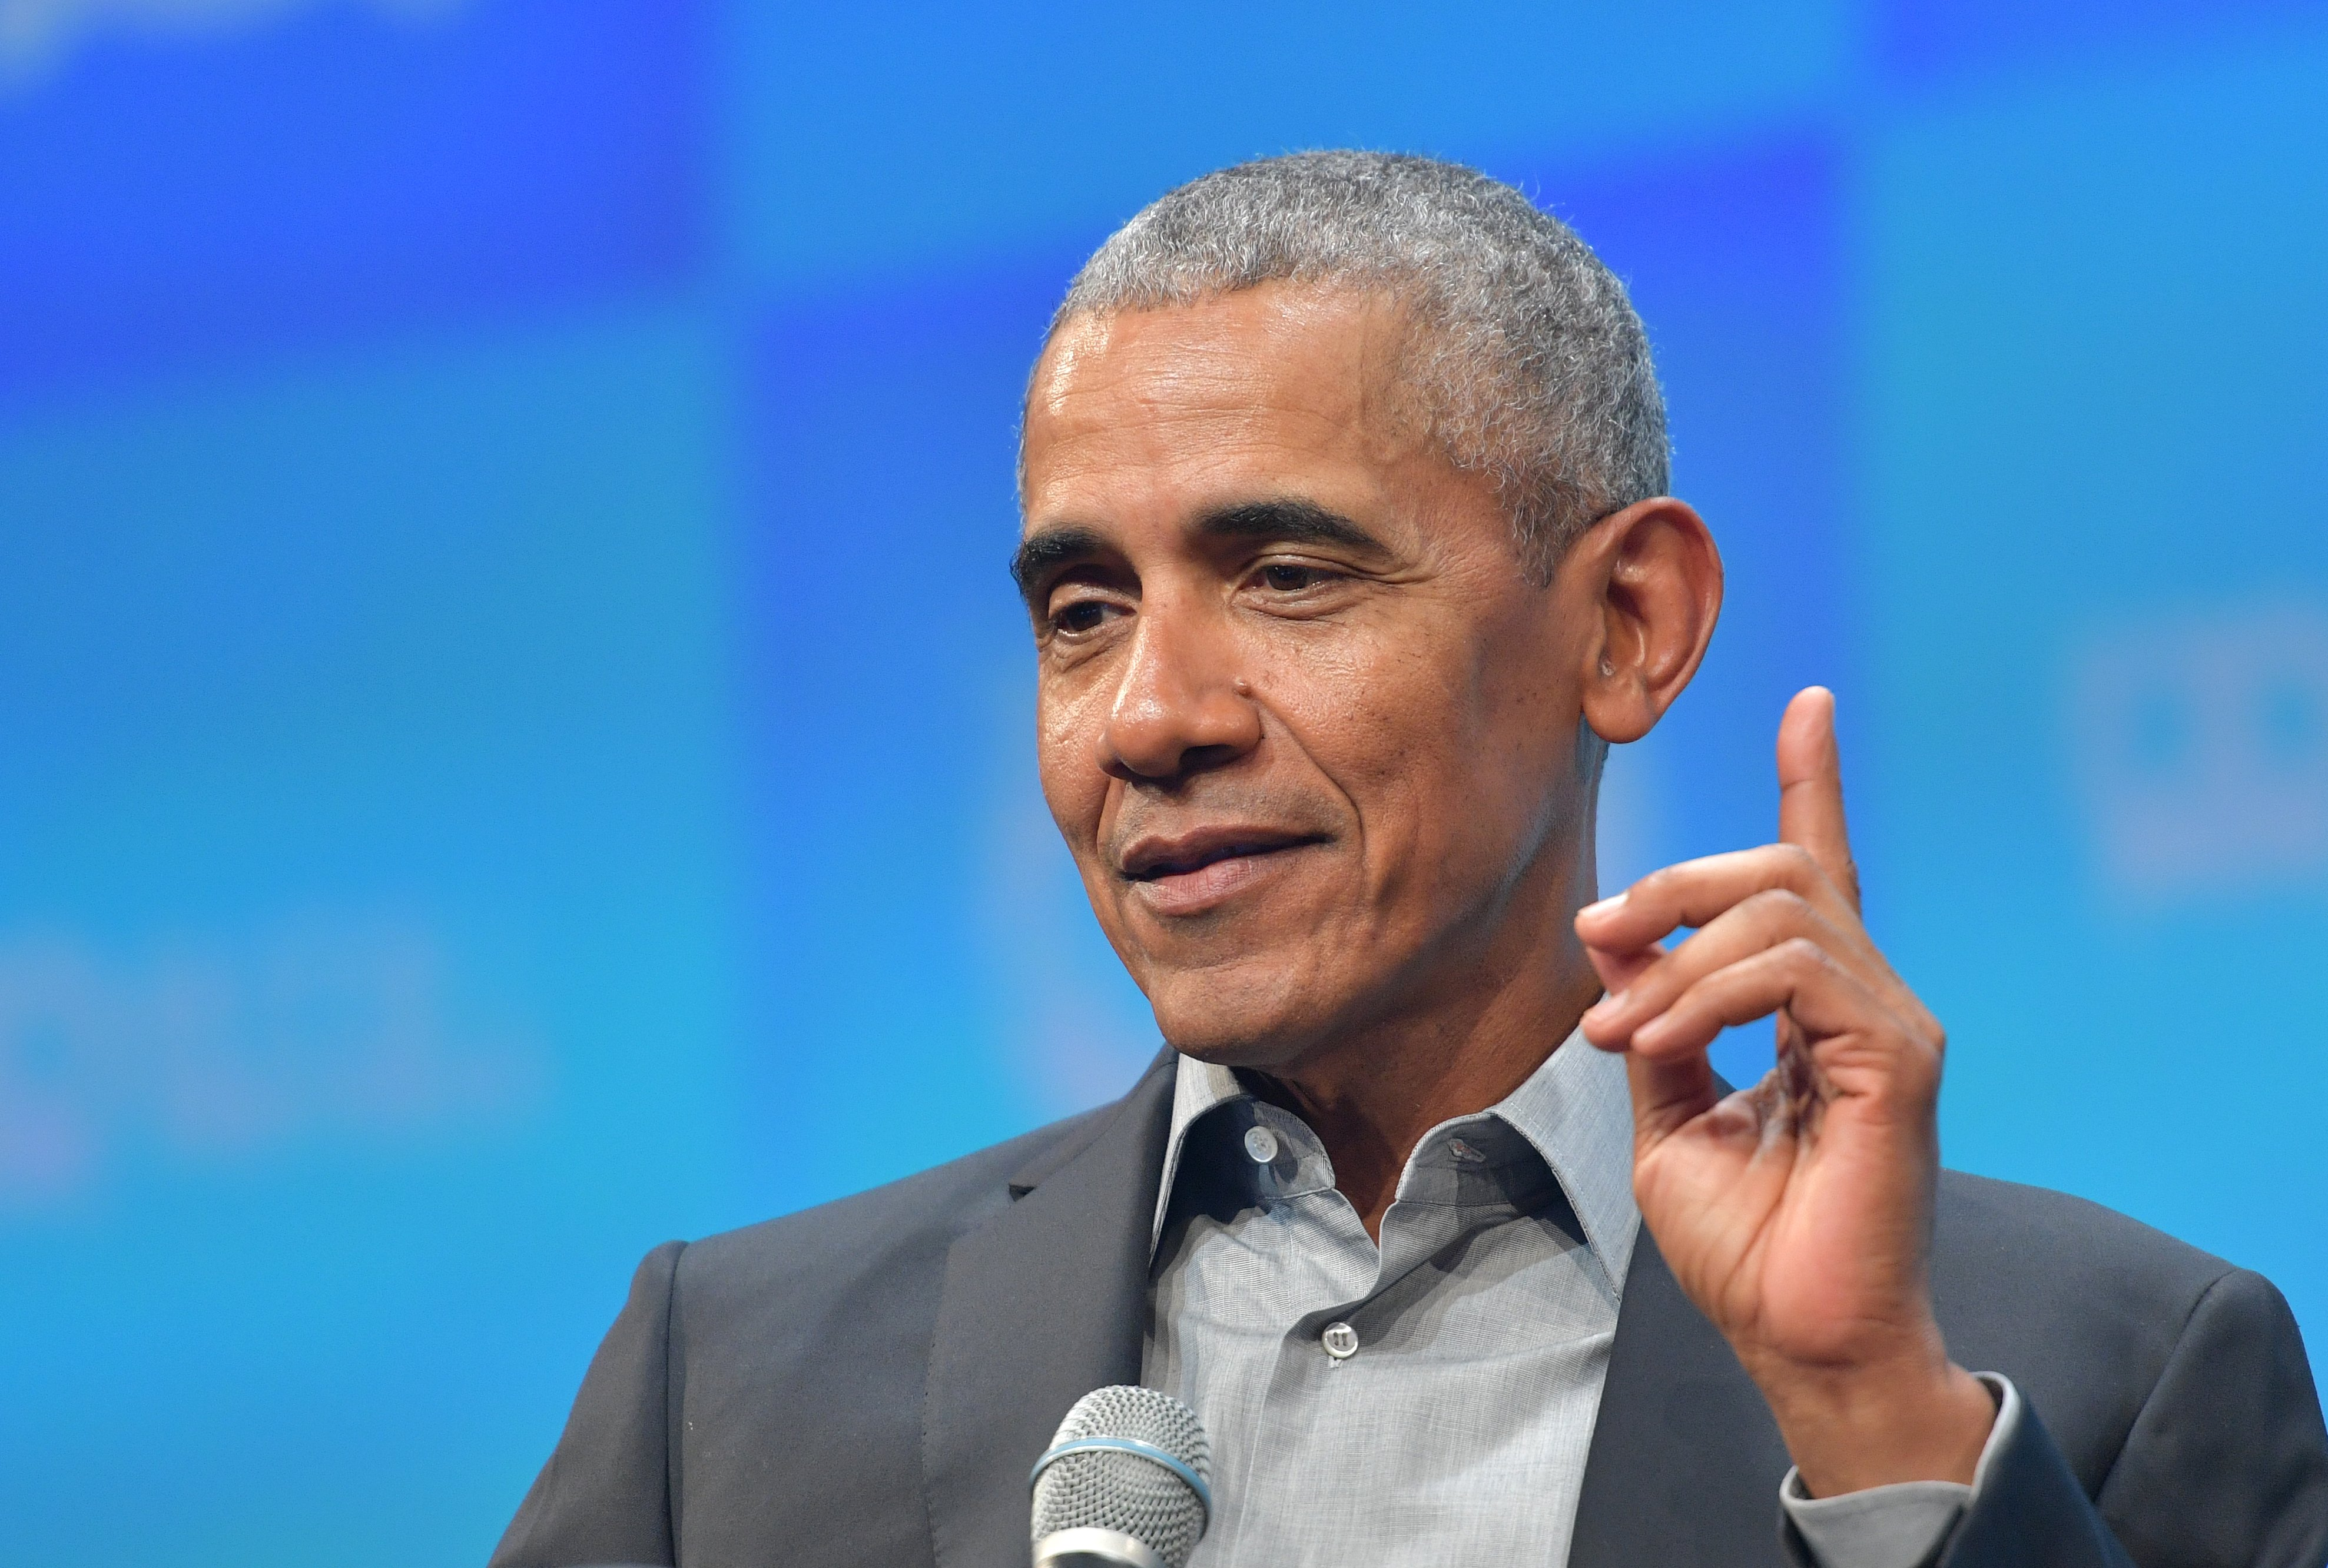 Barack Obama pictured speaking at the Bits & Pretzels meetup on September 29, 2019 in Munich, Germany. | Photo: Getty Images